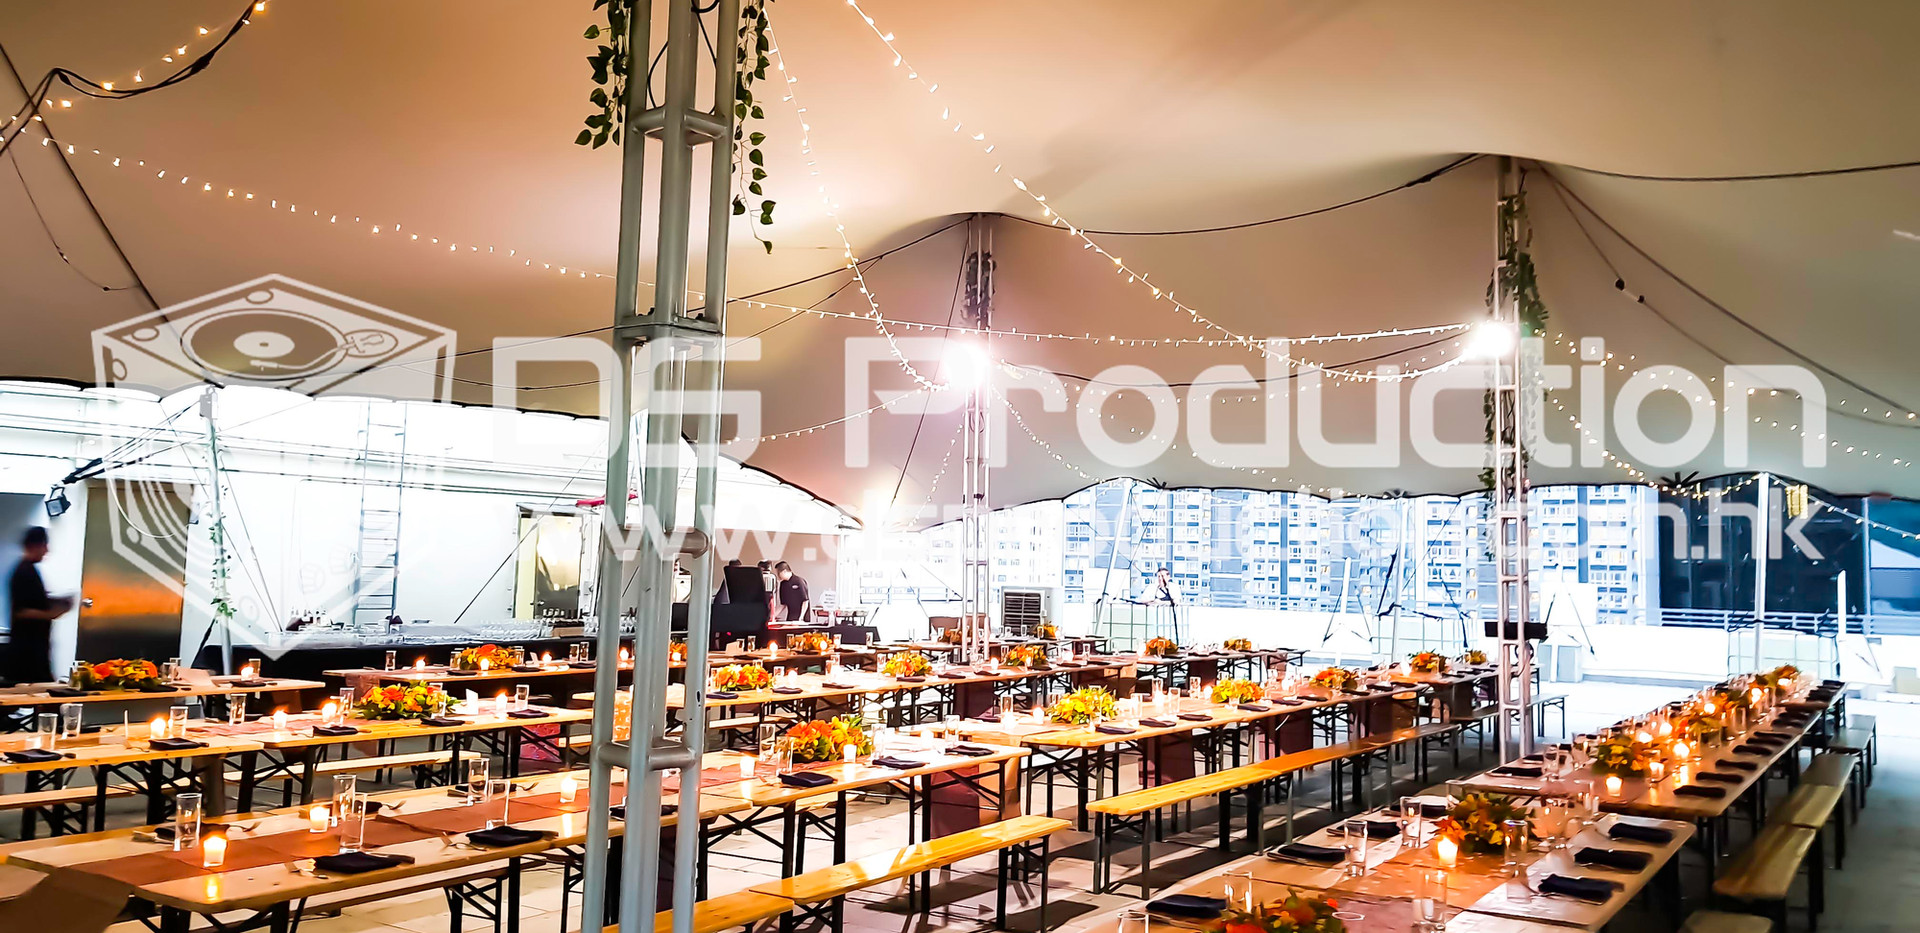 Event Venue Decoration Design & Producti